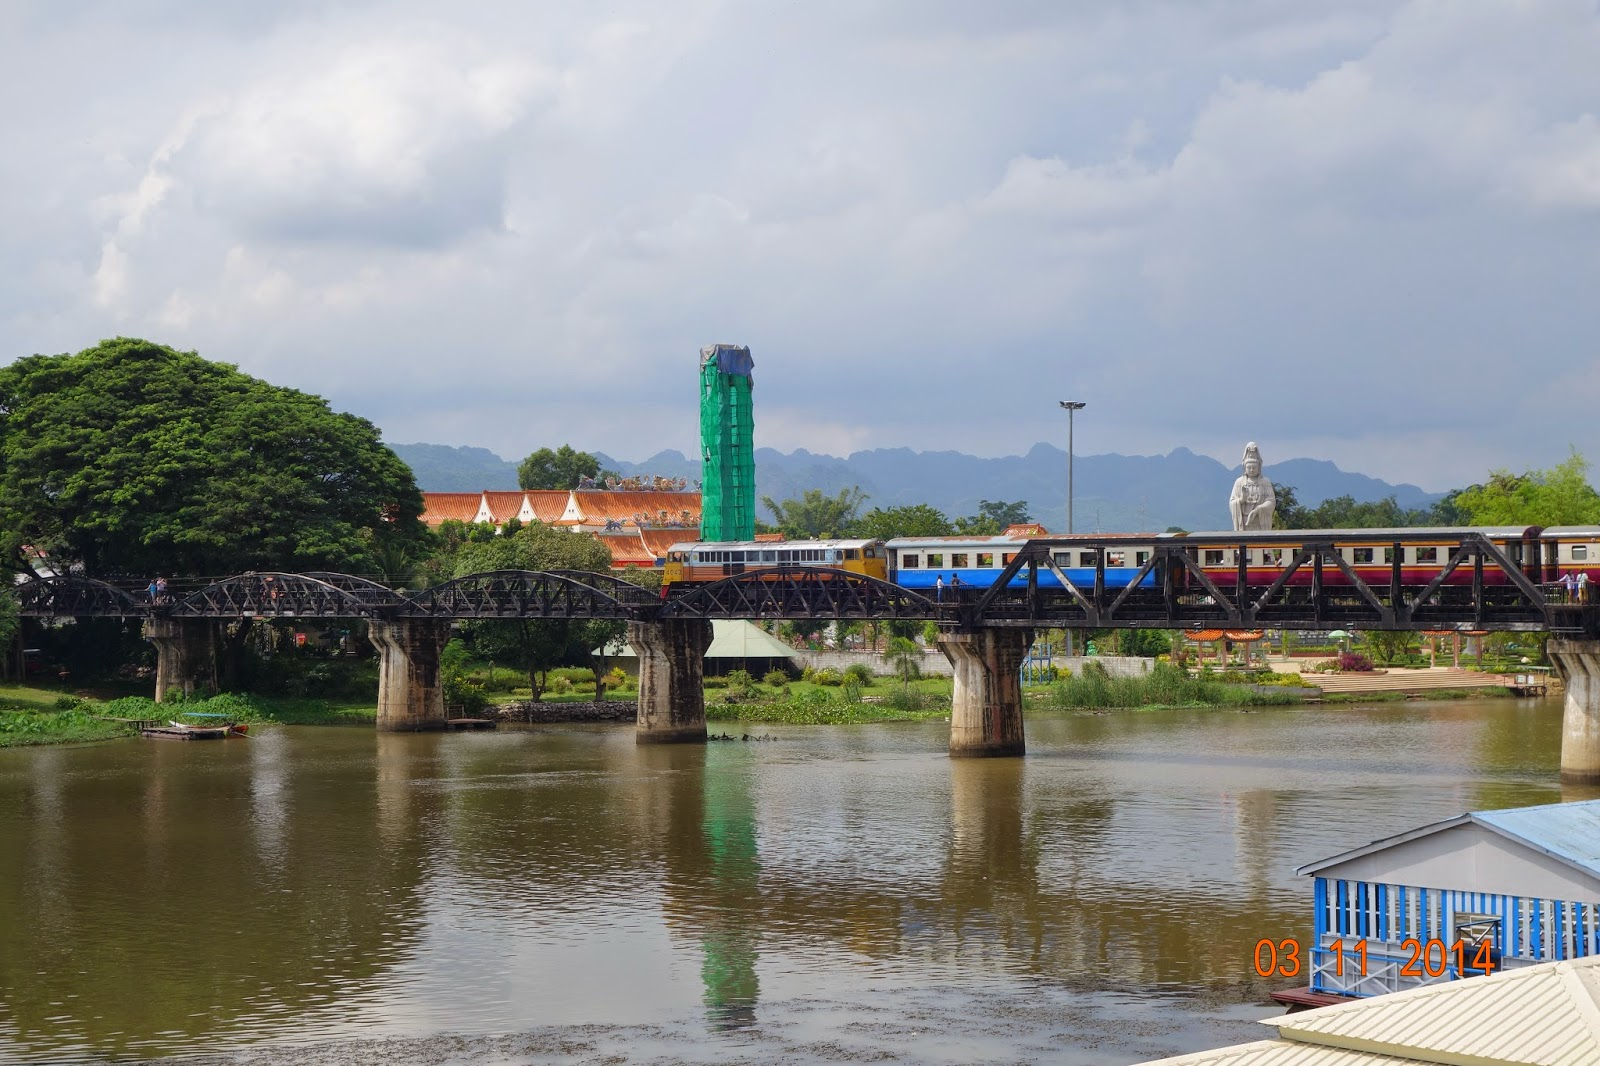 Pak Khwae Thailand  City new picture : View of bridge from War Museum with train crossing fairly new Chinese ...